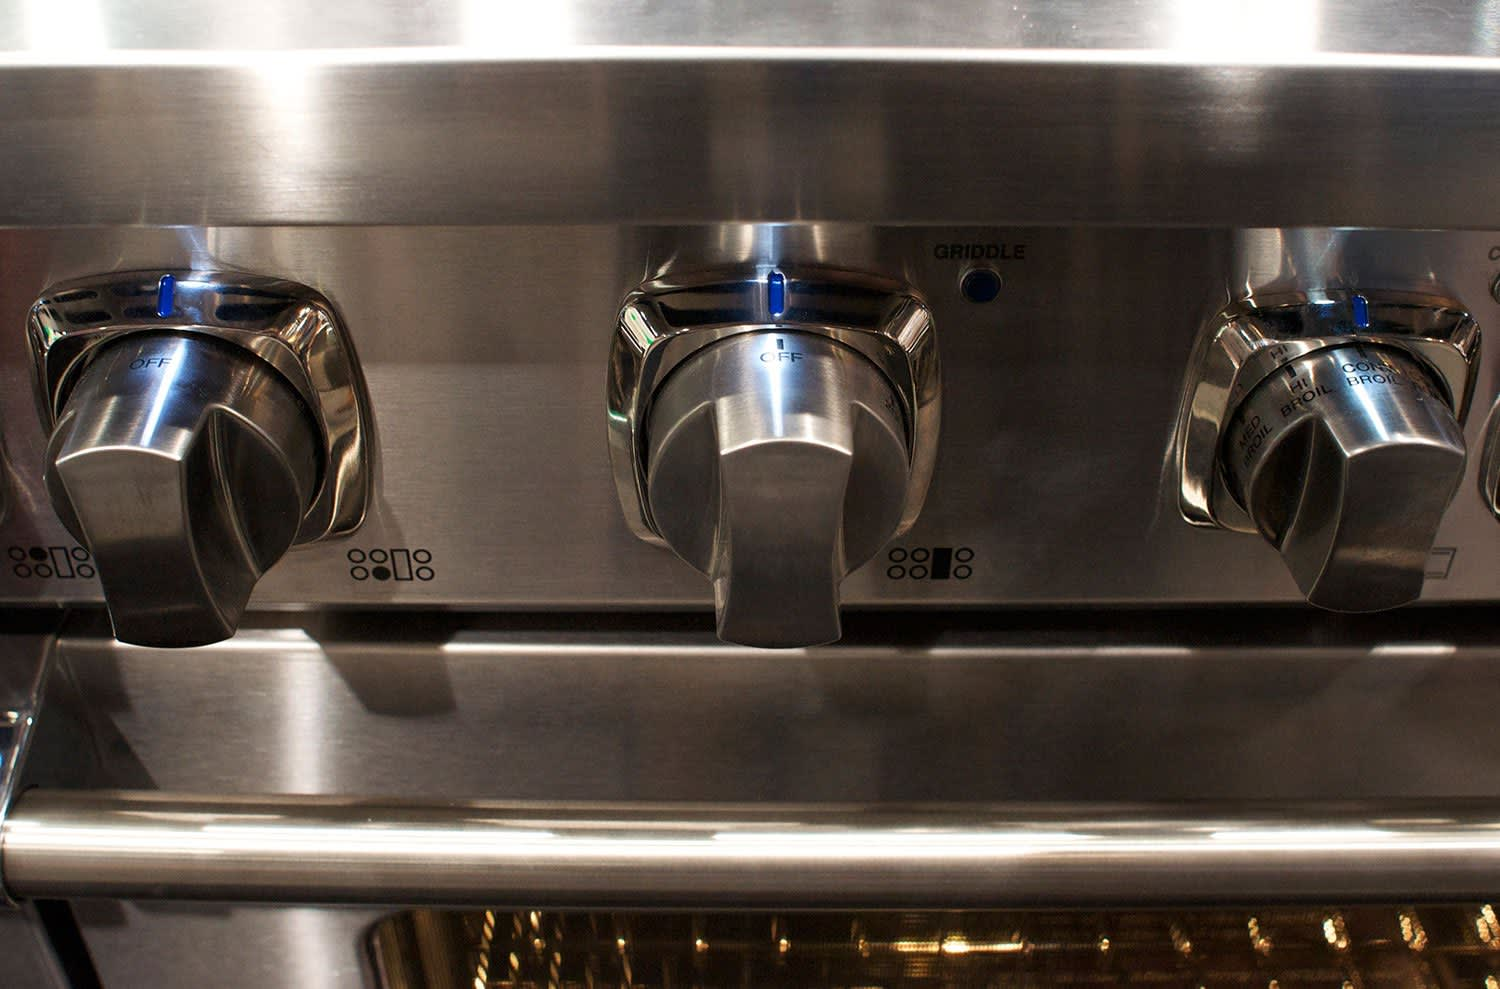 The Best Things I Saw At Kbis This Year New Products From